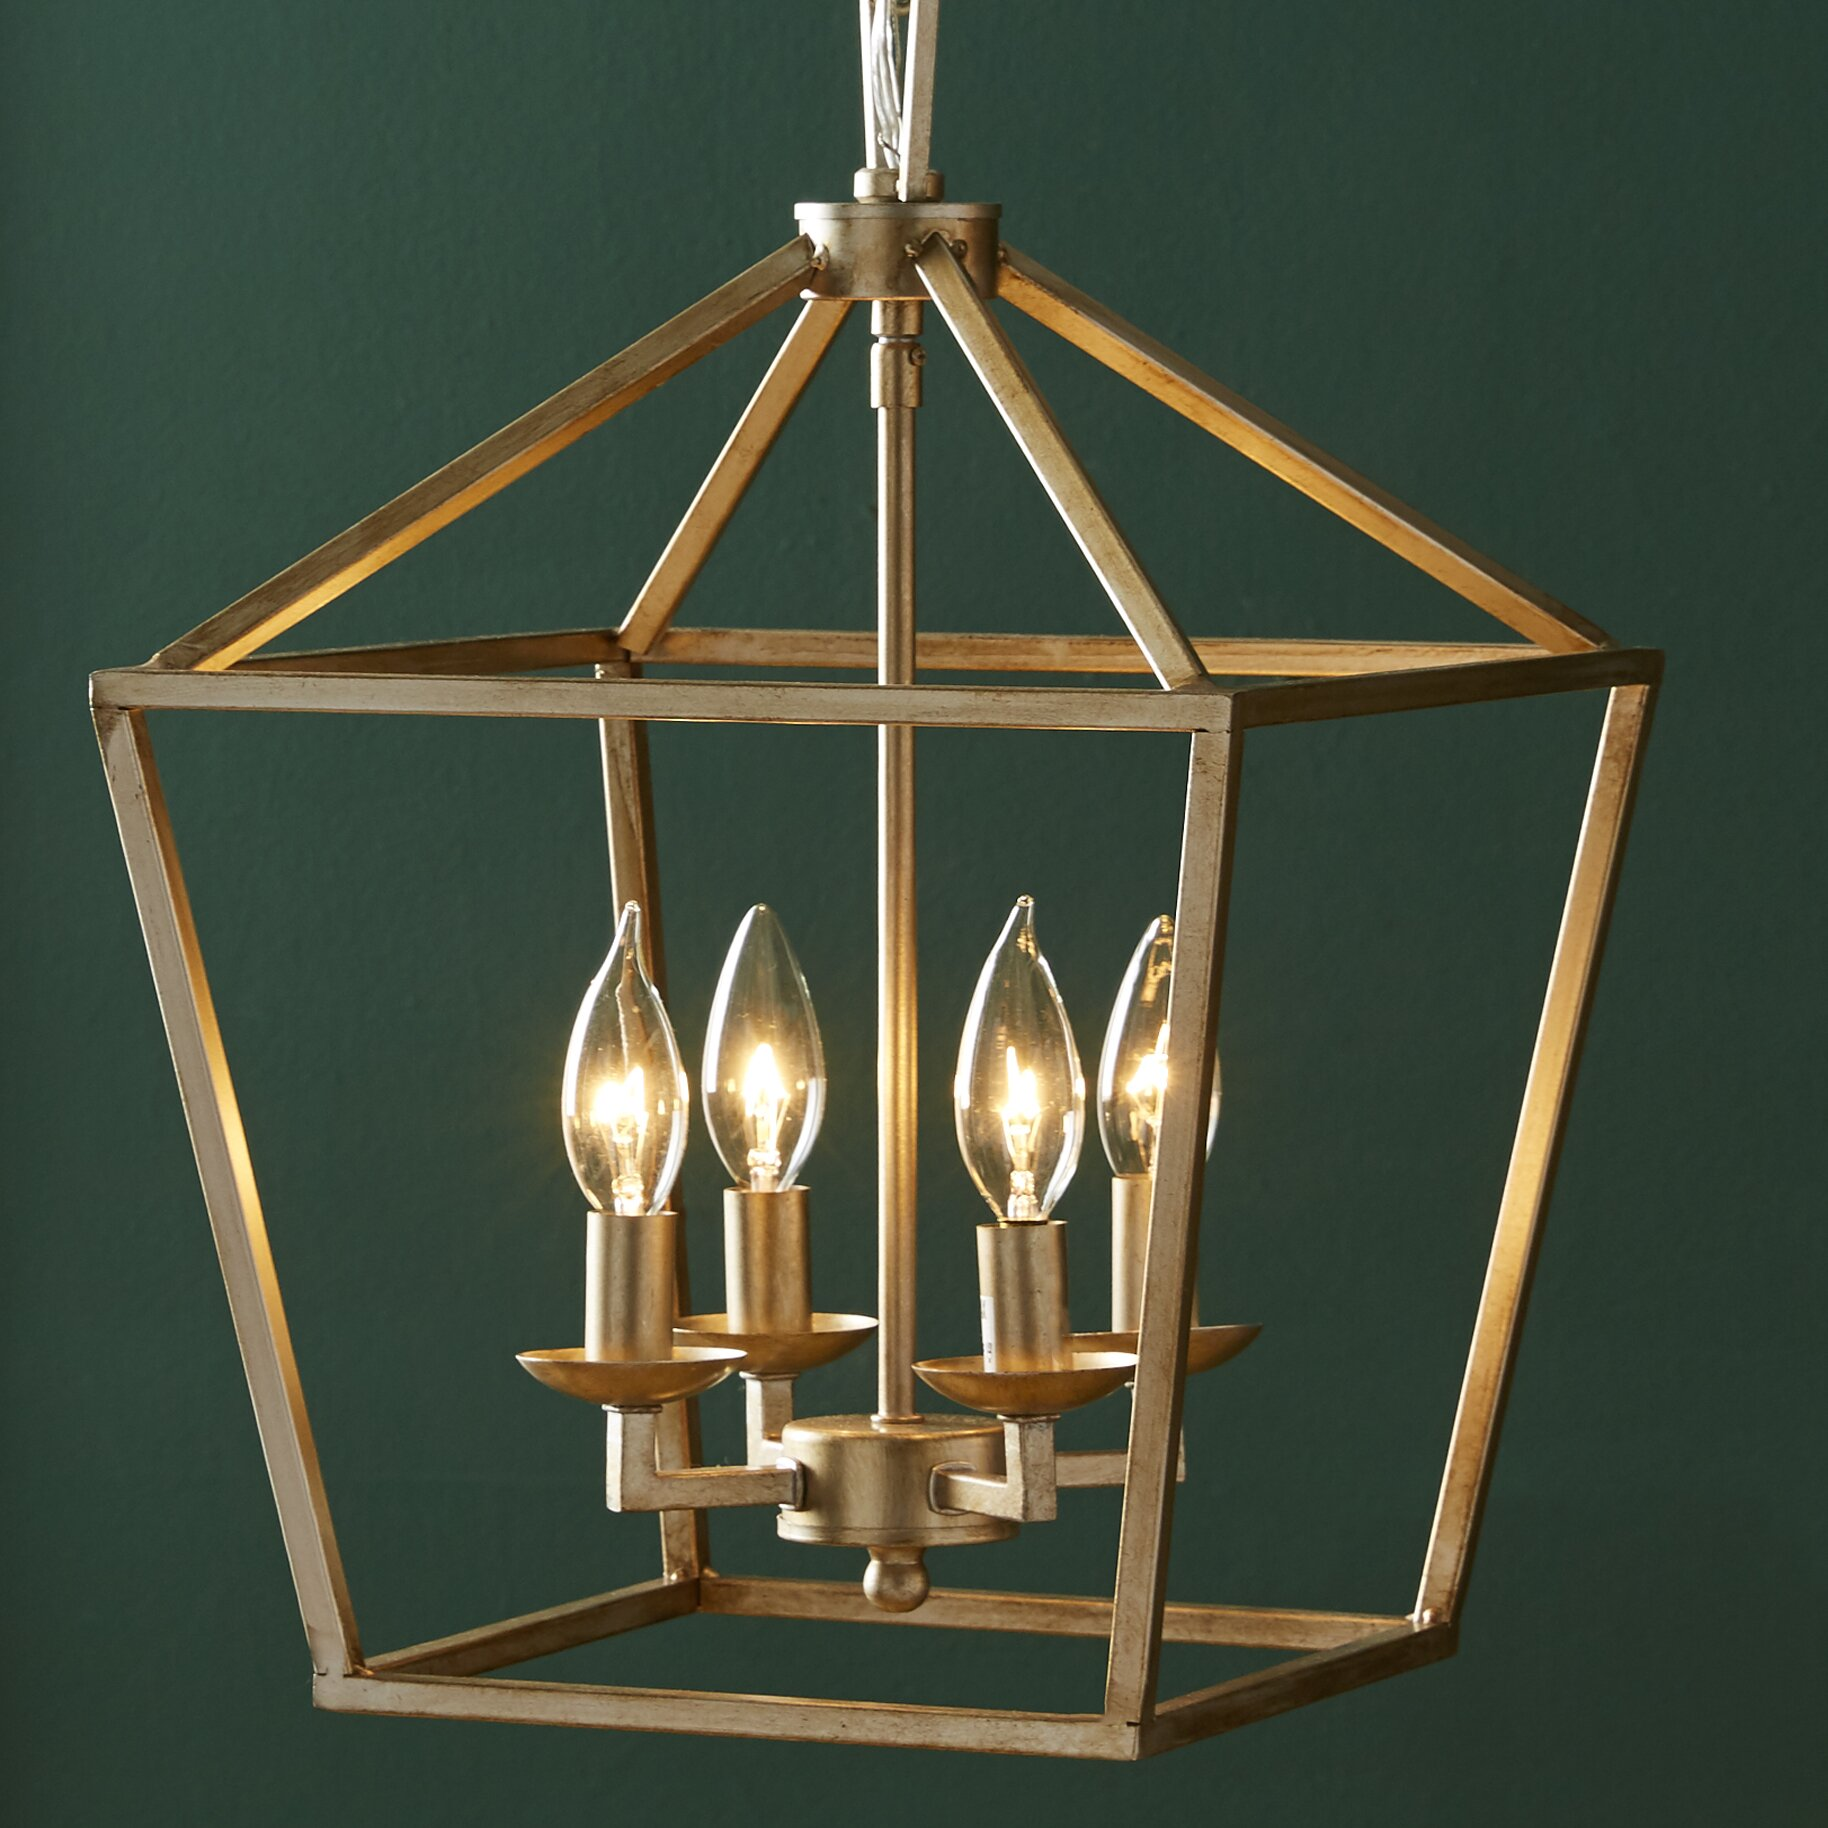 Foyer Ceiling Reviews : Transglobe lighting lacey light foyer pendant reviews